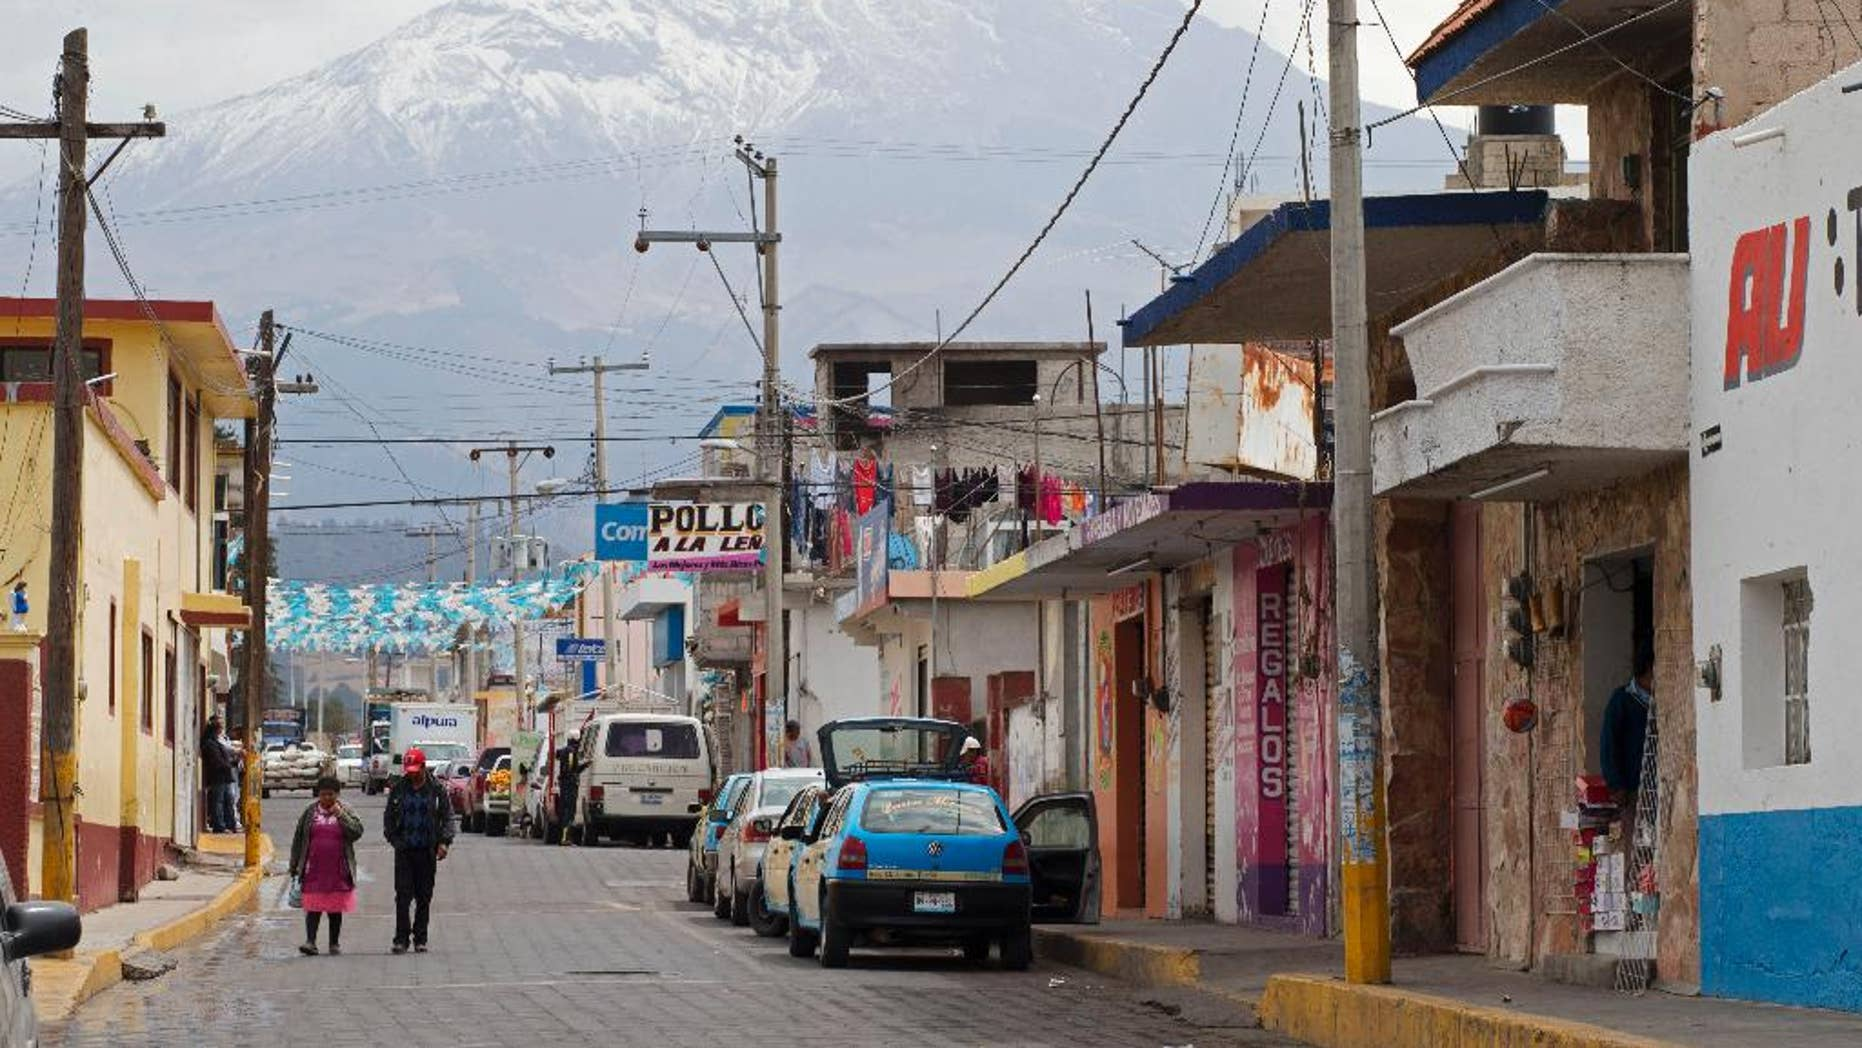 FILE - In this March 10, 2015 file photo, the Pico de Orizaba volcano rises above the town of Tlachichuca in Mexico's Puebla state. Mountaineers discovered another mummified body on Mexico's tallest peak and brought it down on Thursday, June 4, 2015, making it the third body found in recent months. The body's identity was still being confirmed. (AP Photo/Rebecca Blackwell, File)